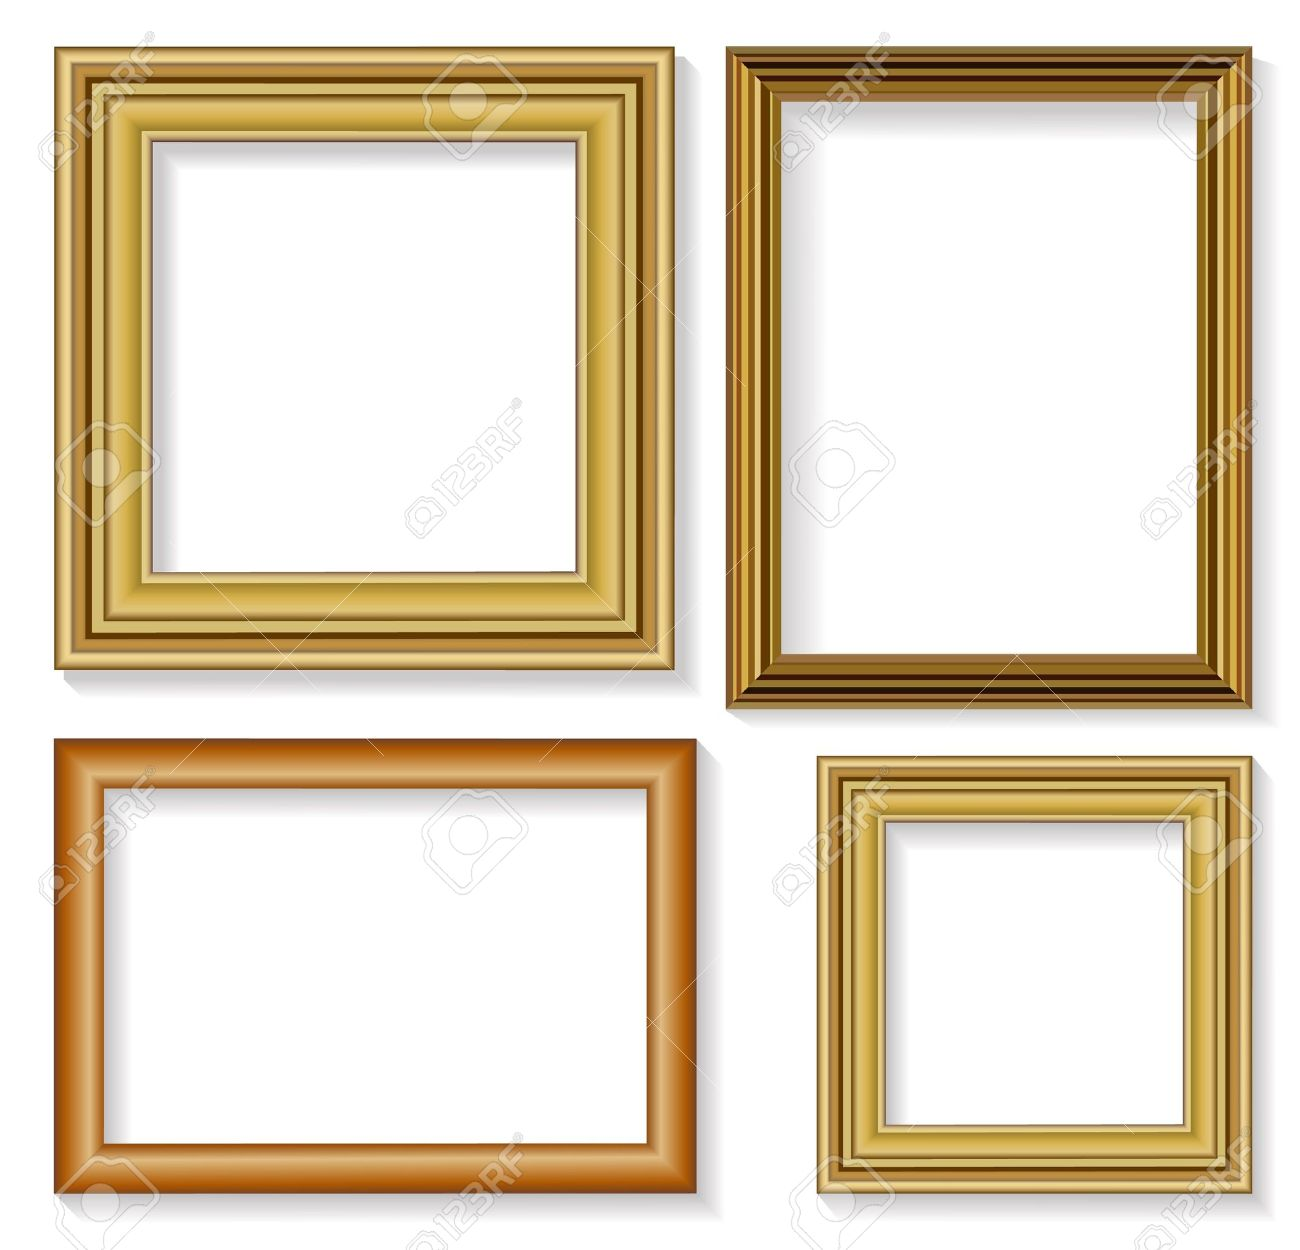 The Four Frames For Picture Royalty Free Cliparts, Vectors, And ...